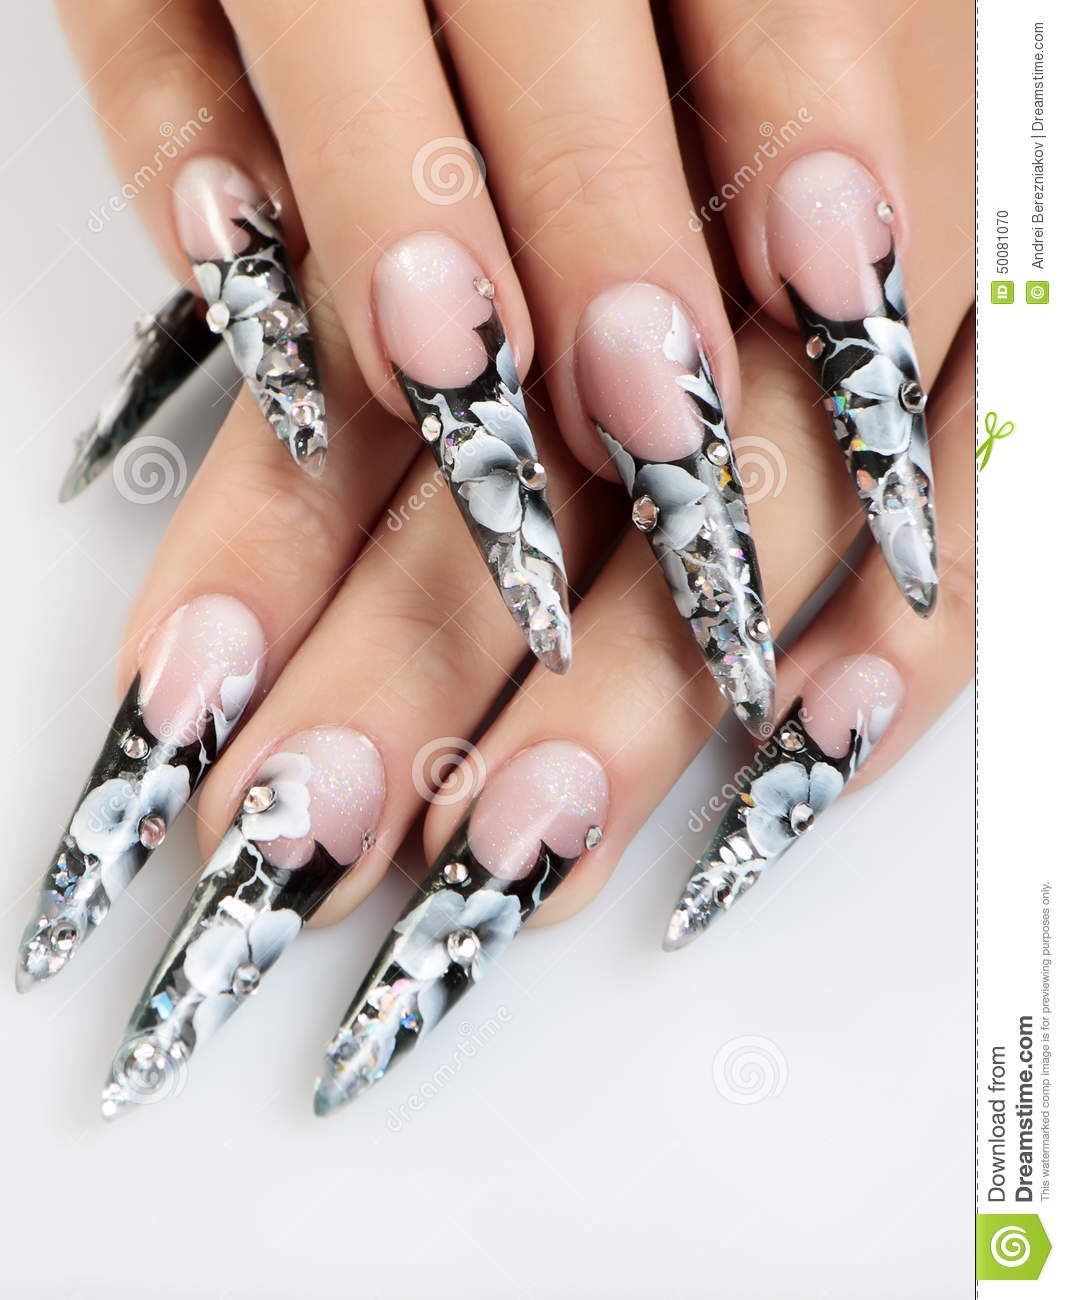 Black And White Design Nails Stock Photo Image Of Modern Girl